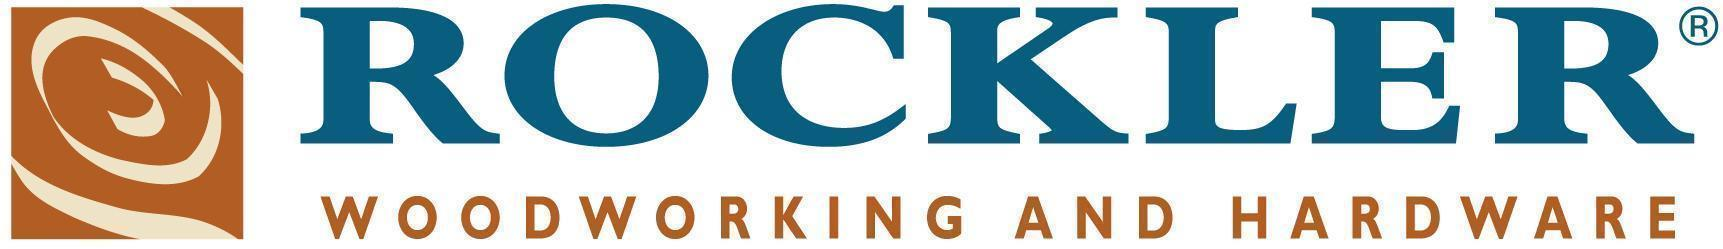 Rockler Woodworking - sponsor of the Great Lakes Woodworking Festival